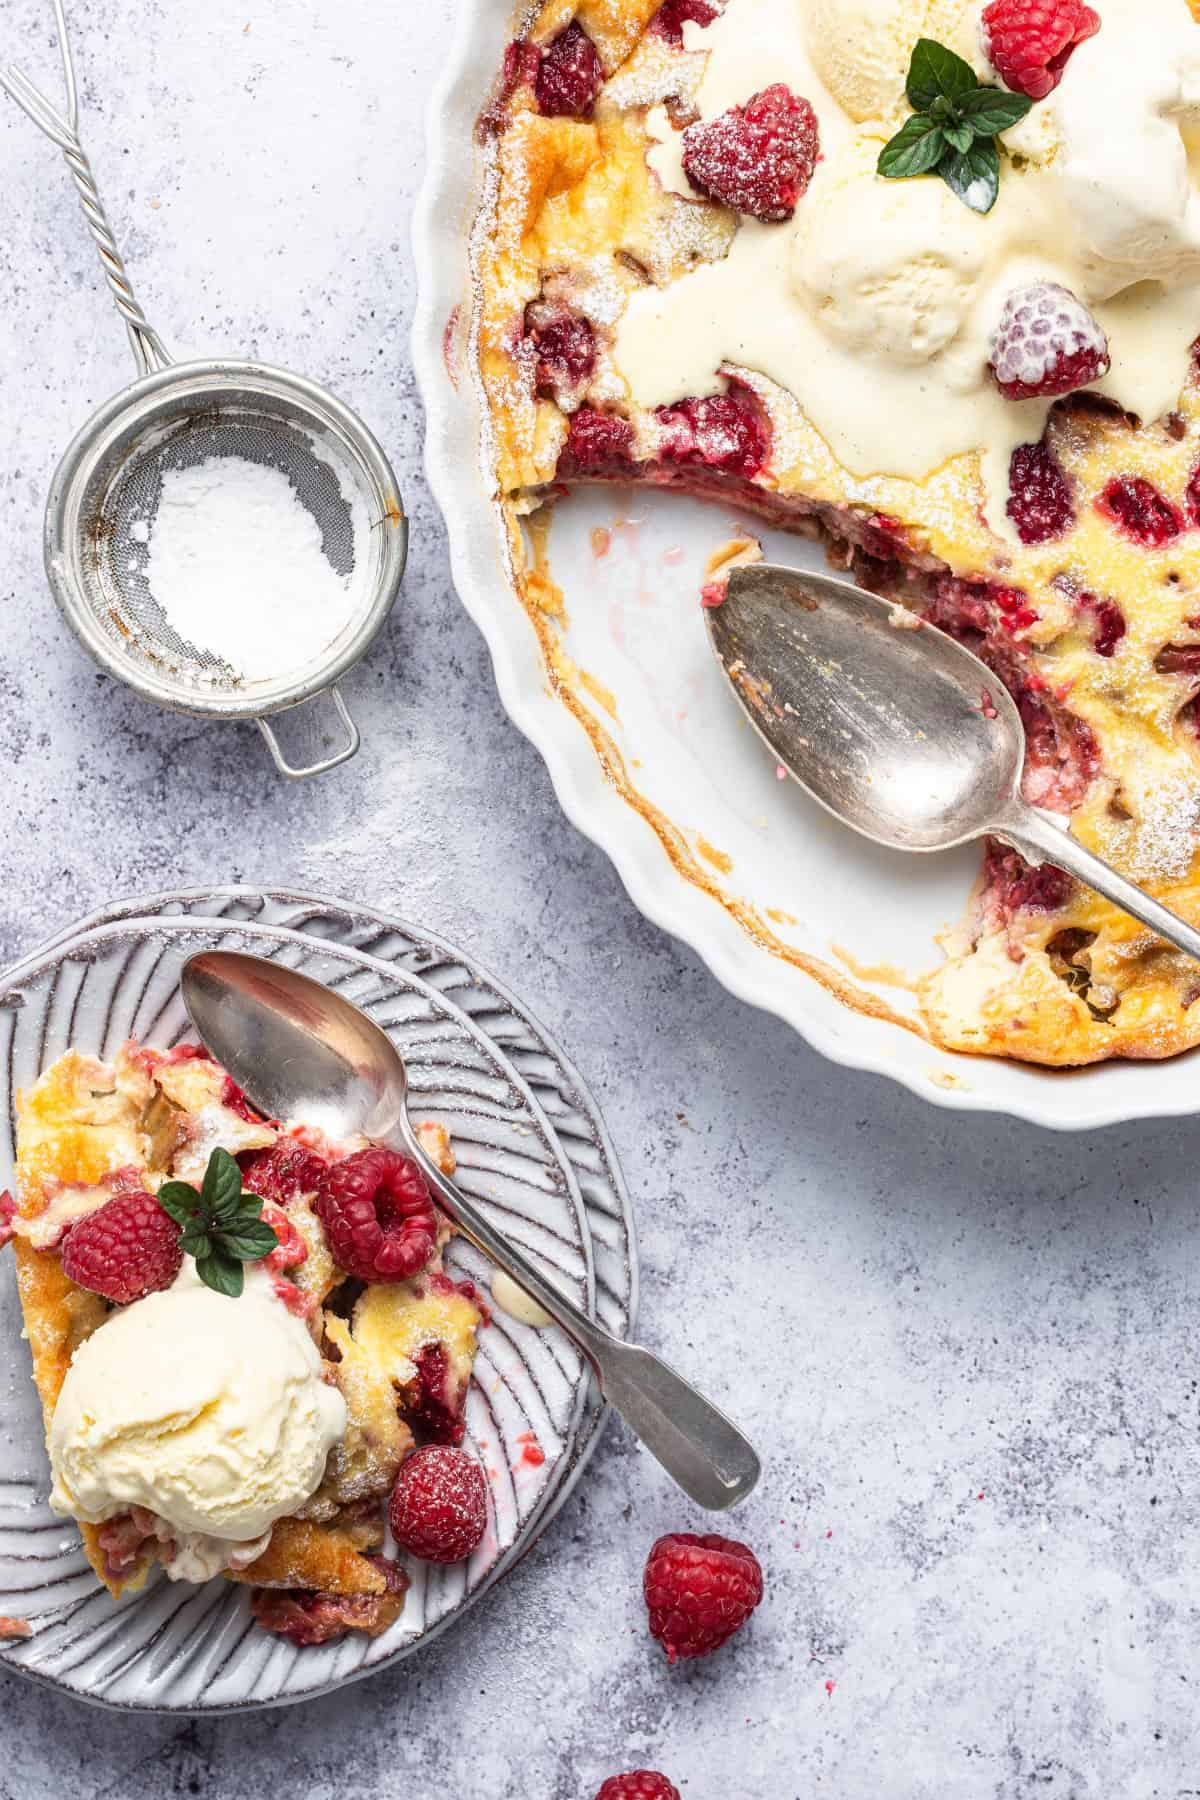 Clafoutis scooped out onto a serving plate.